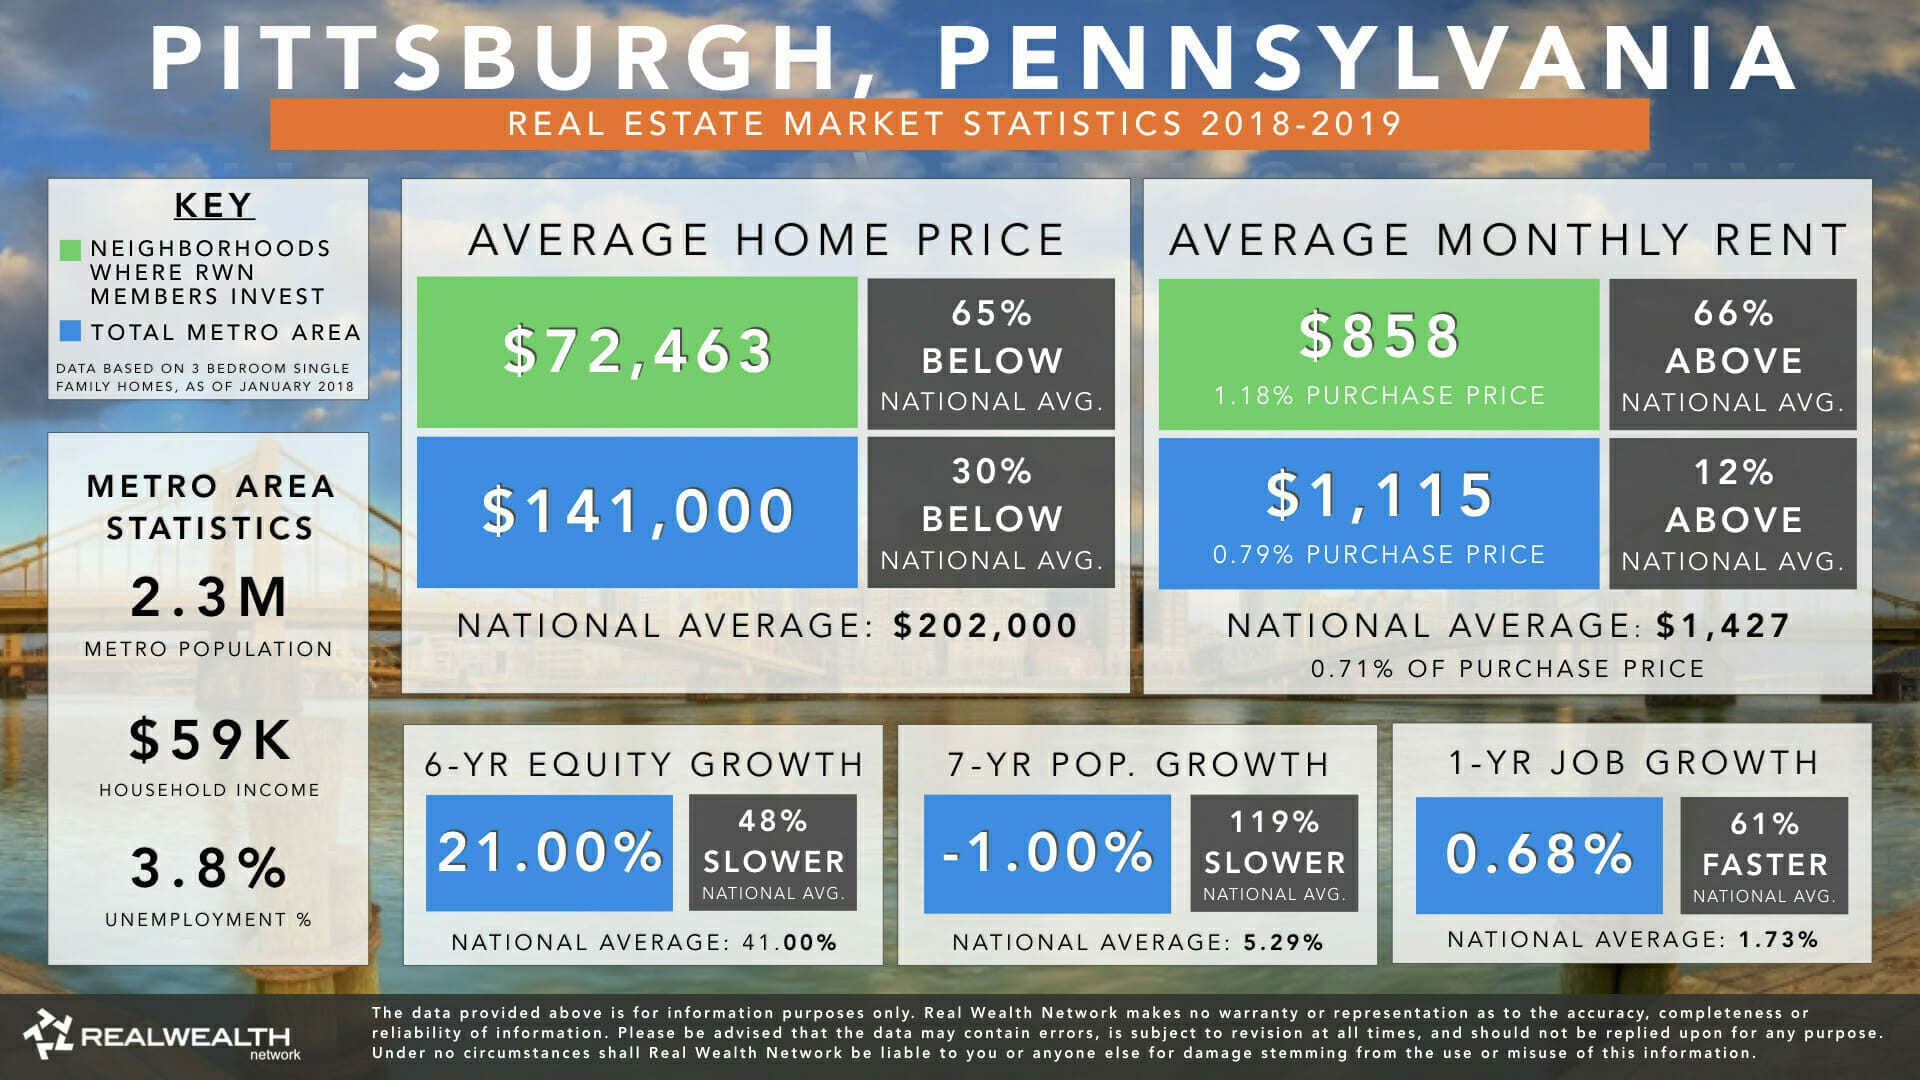 Pittsburgh Events February 2020.Pittsburgh Real Estate Market 2019 2020 Trends Forecast